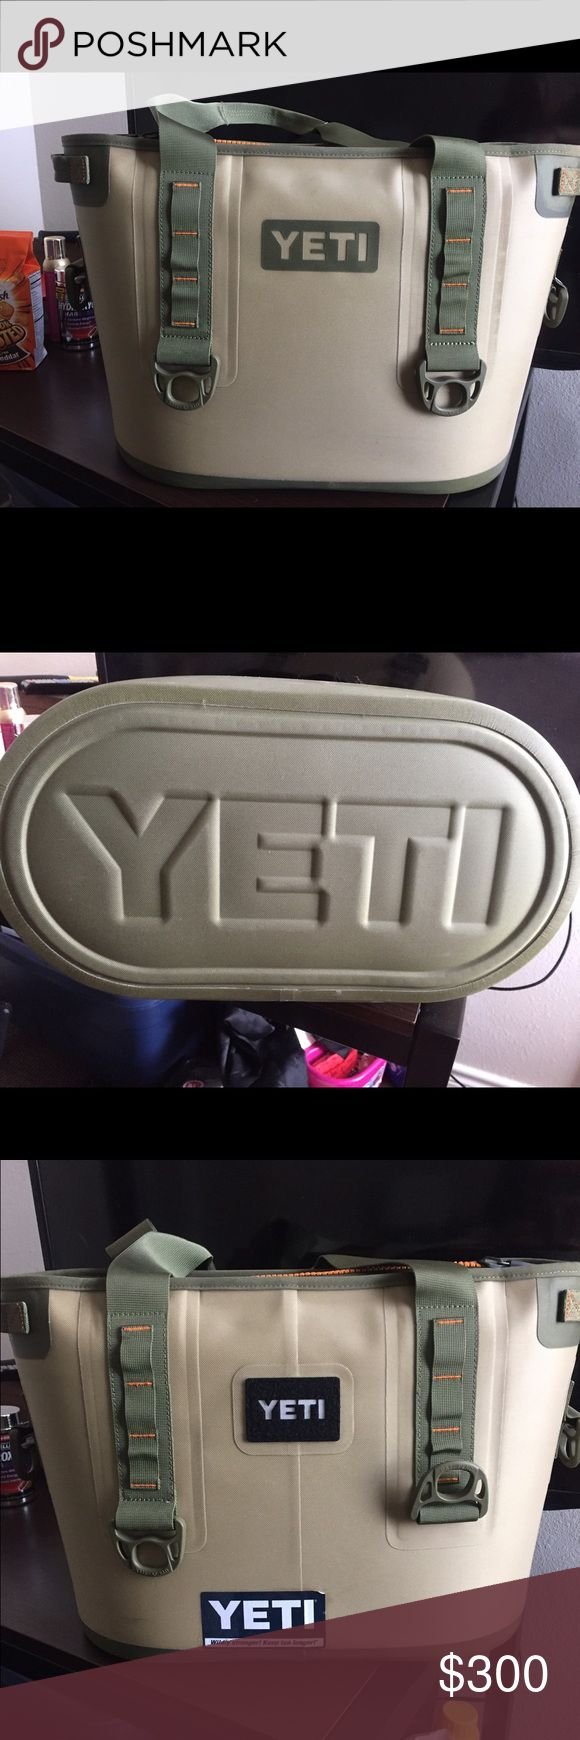 Yeti cooler bag Is in very good condition I just don't want it anymore! Although there's a Yeti sticker on it that I put on it in college. Willing to negotiate price due to that! The offer I have isn't set so feel free to make an offer :) Yeti Bags